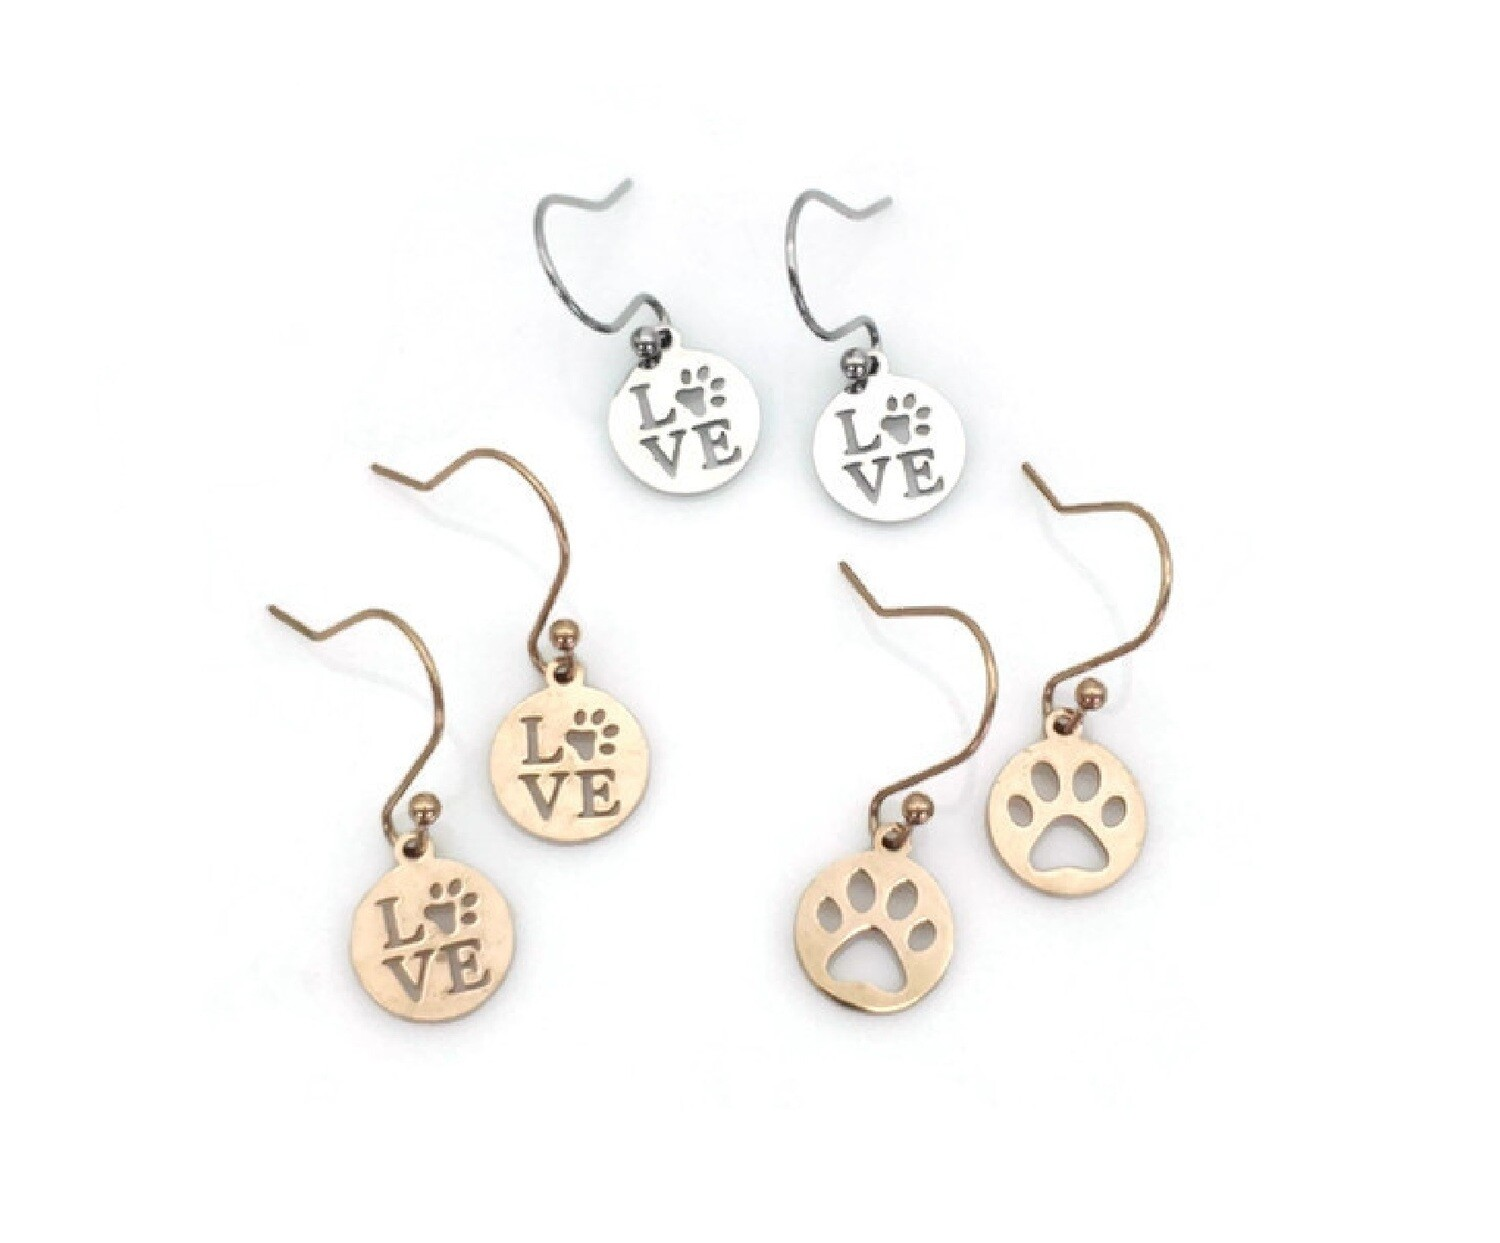 Animal Love Earrings with Interchangeable Pendants